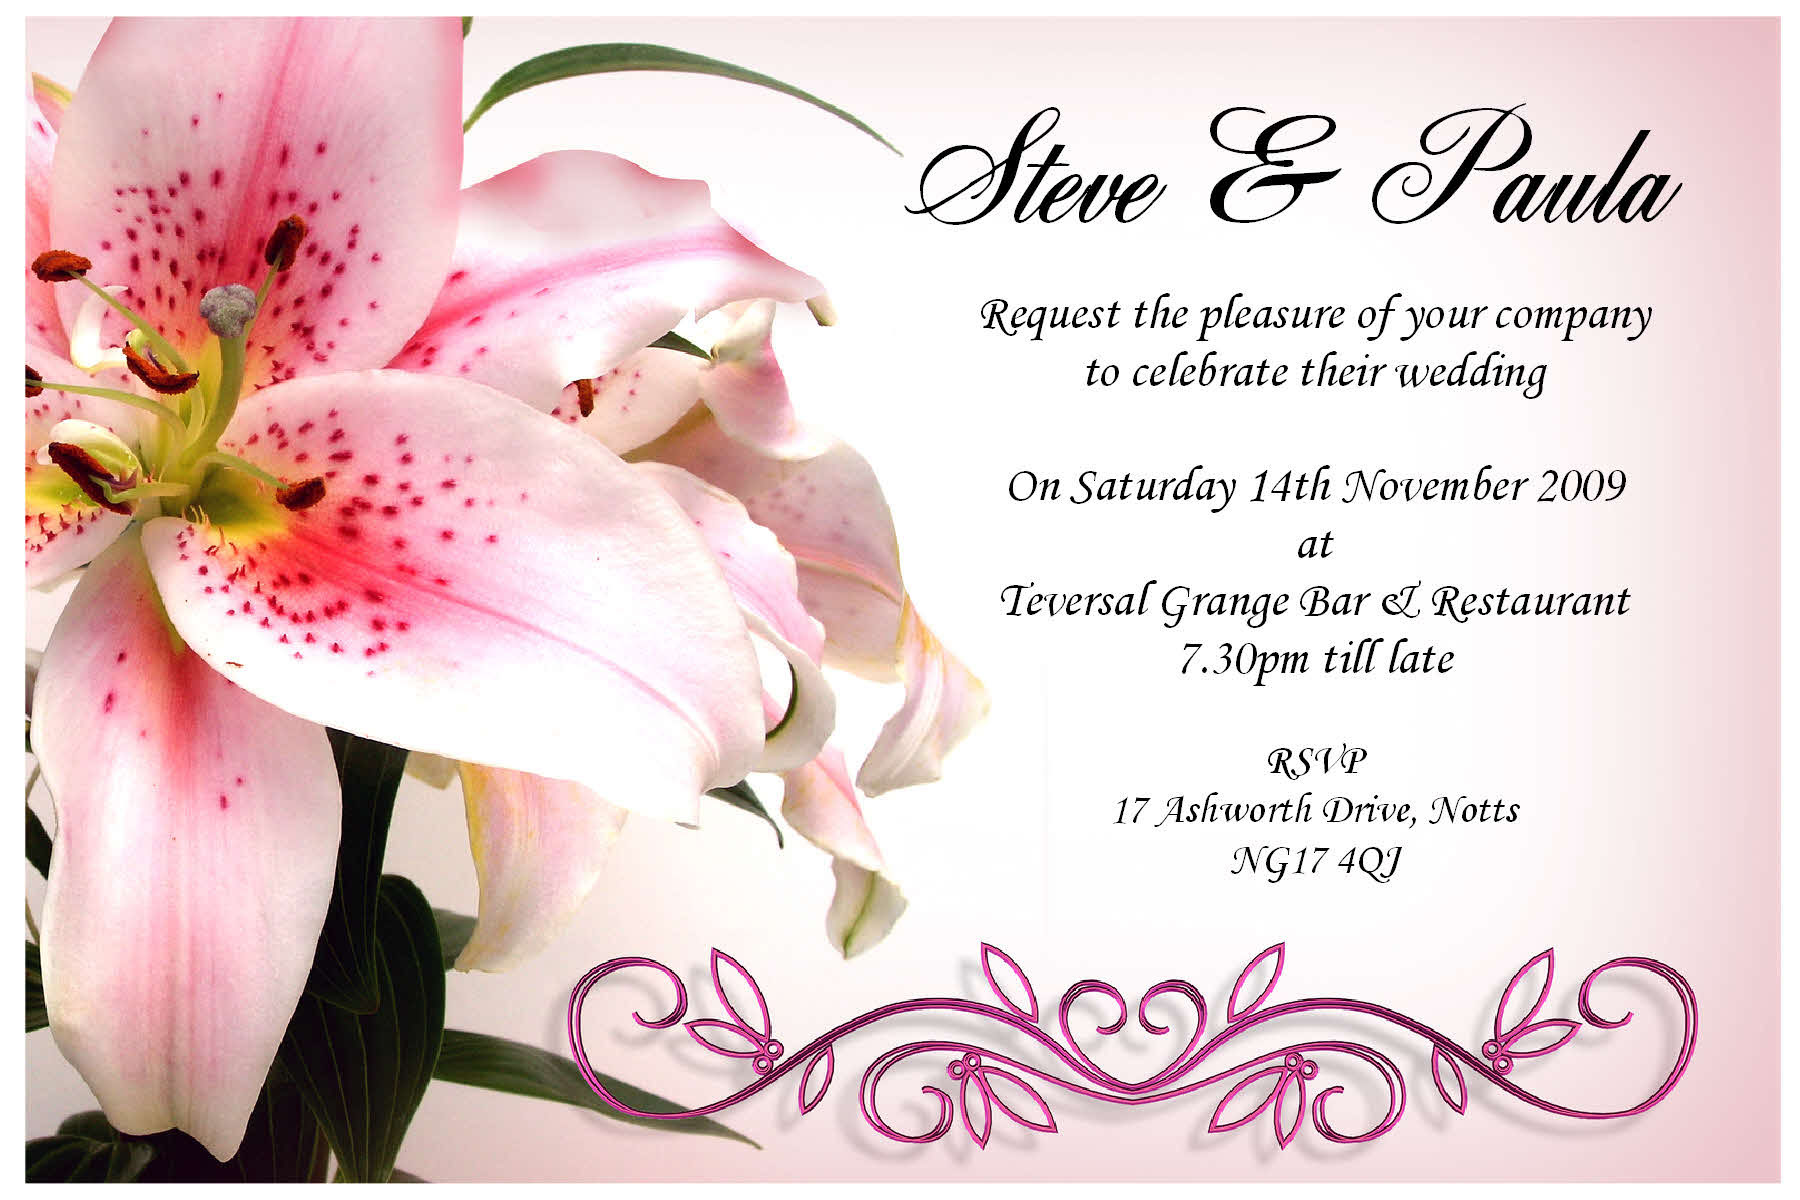 Engagement Invitations Card as best invitations example